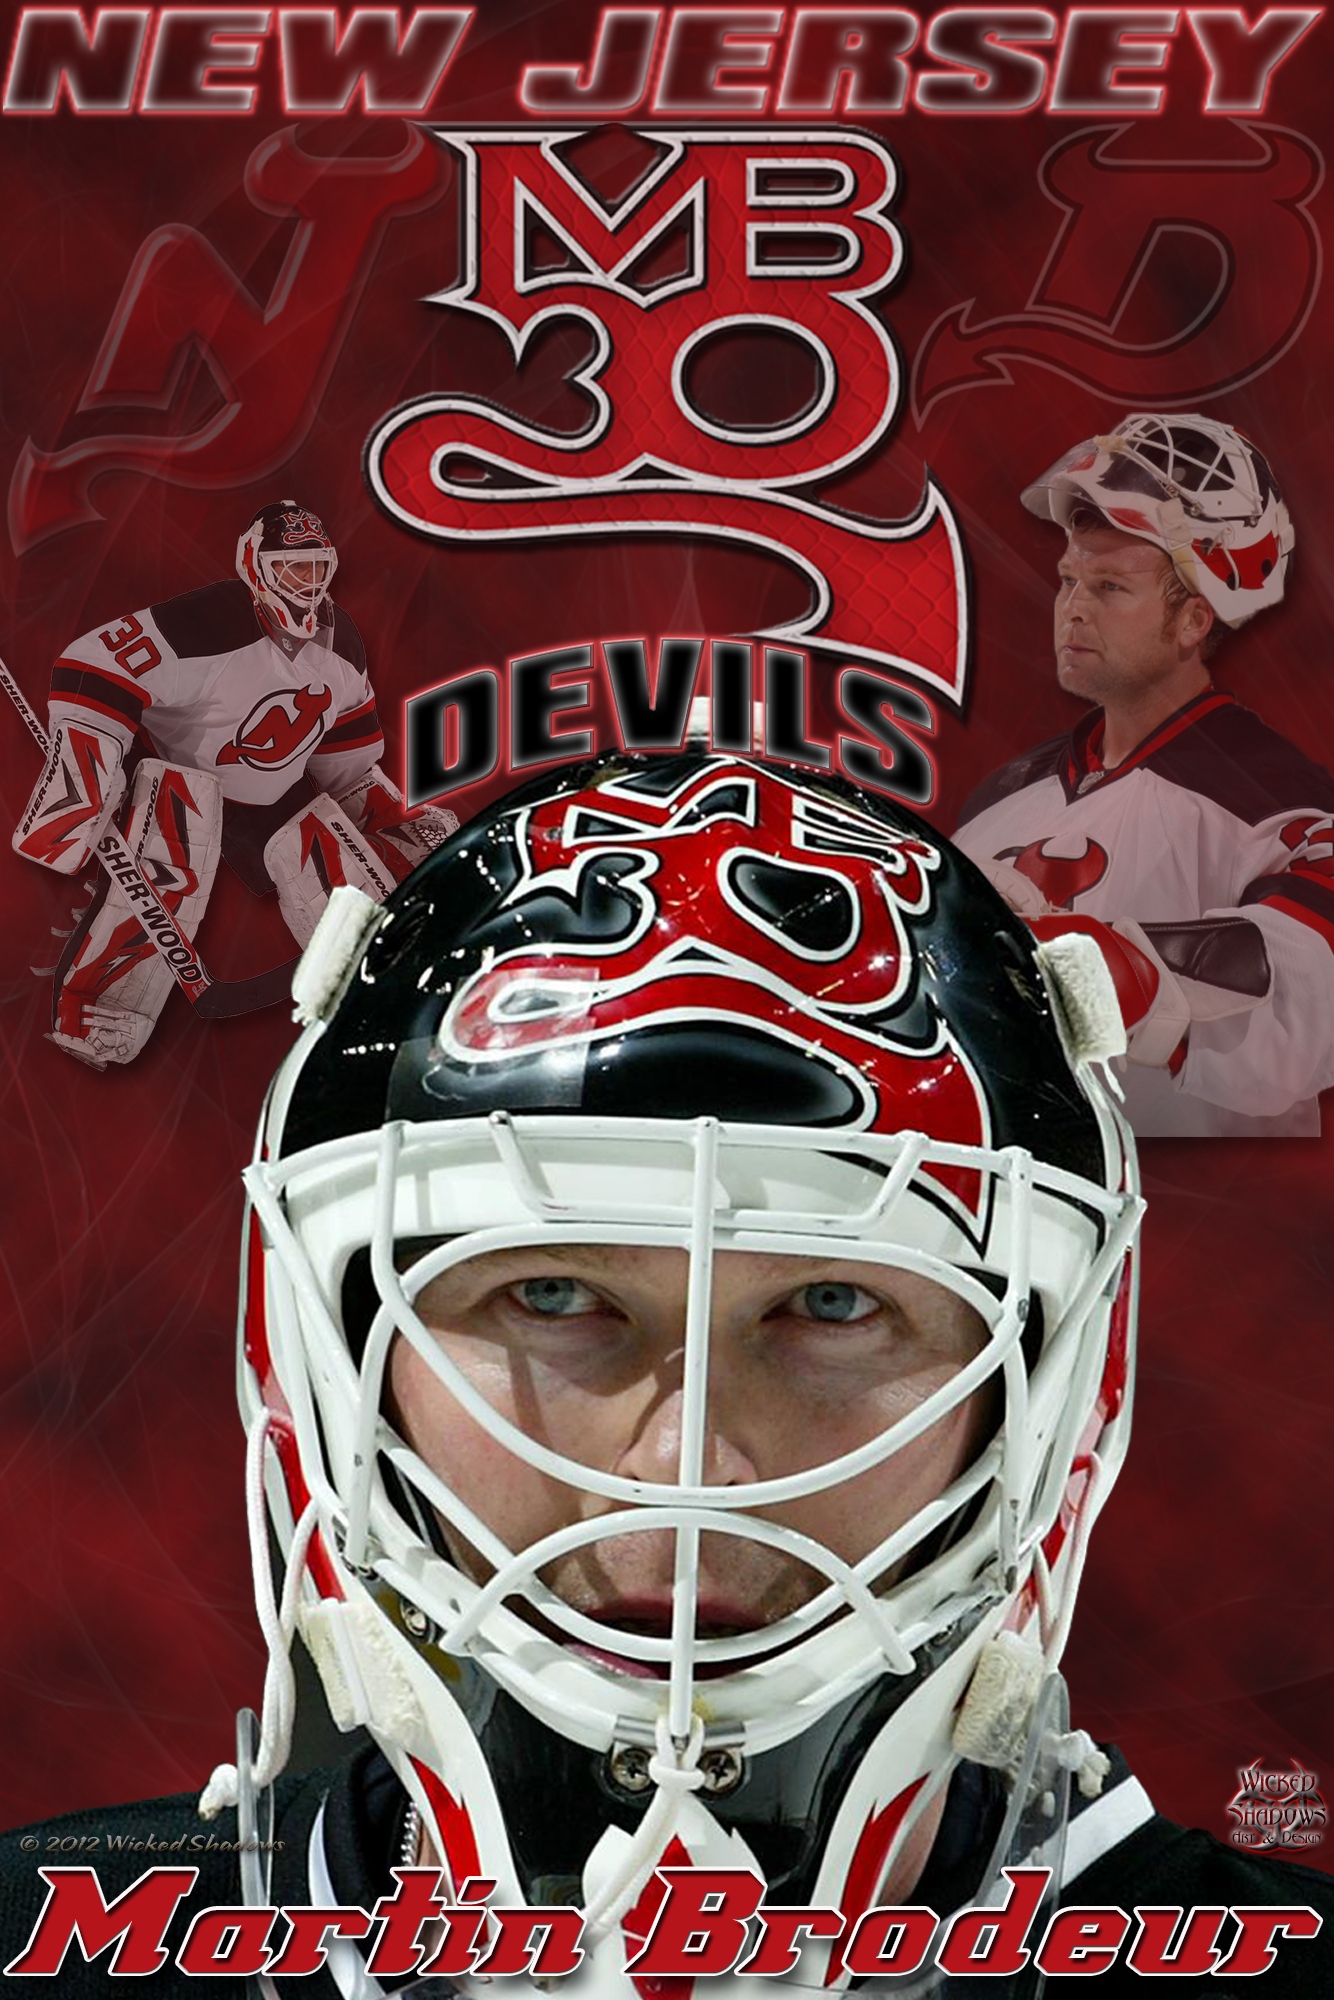 1334x2000 - New Jersey Devils Wallpapers 23